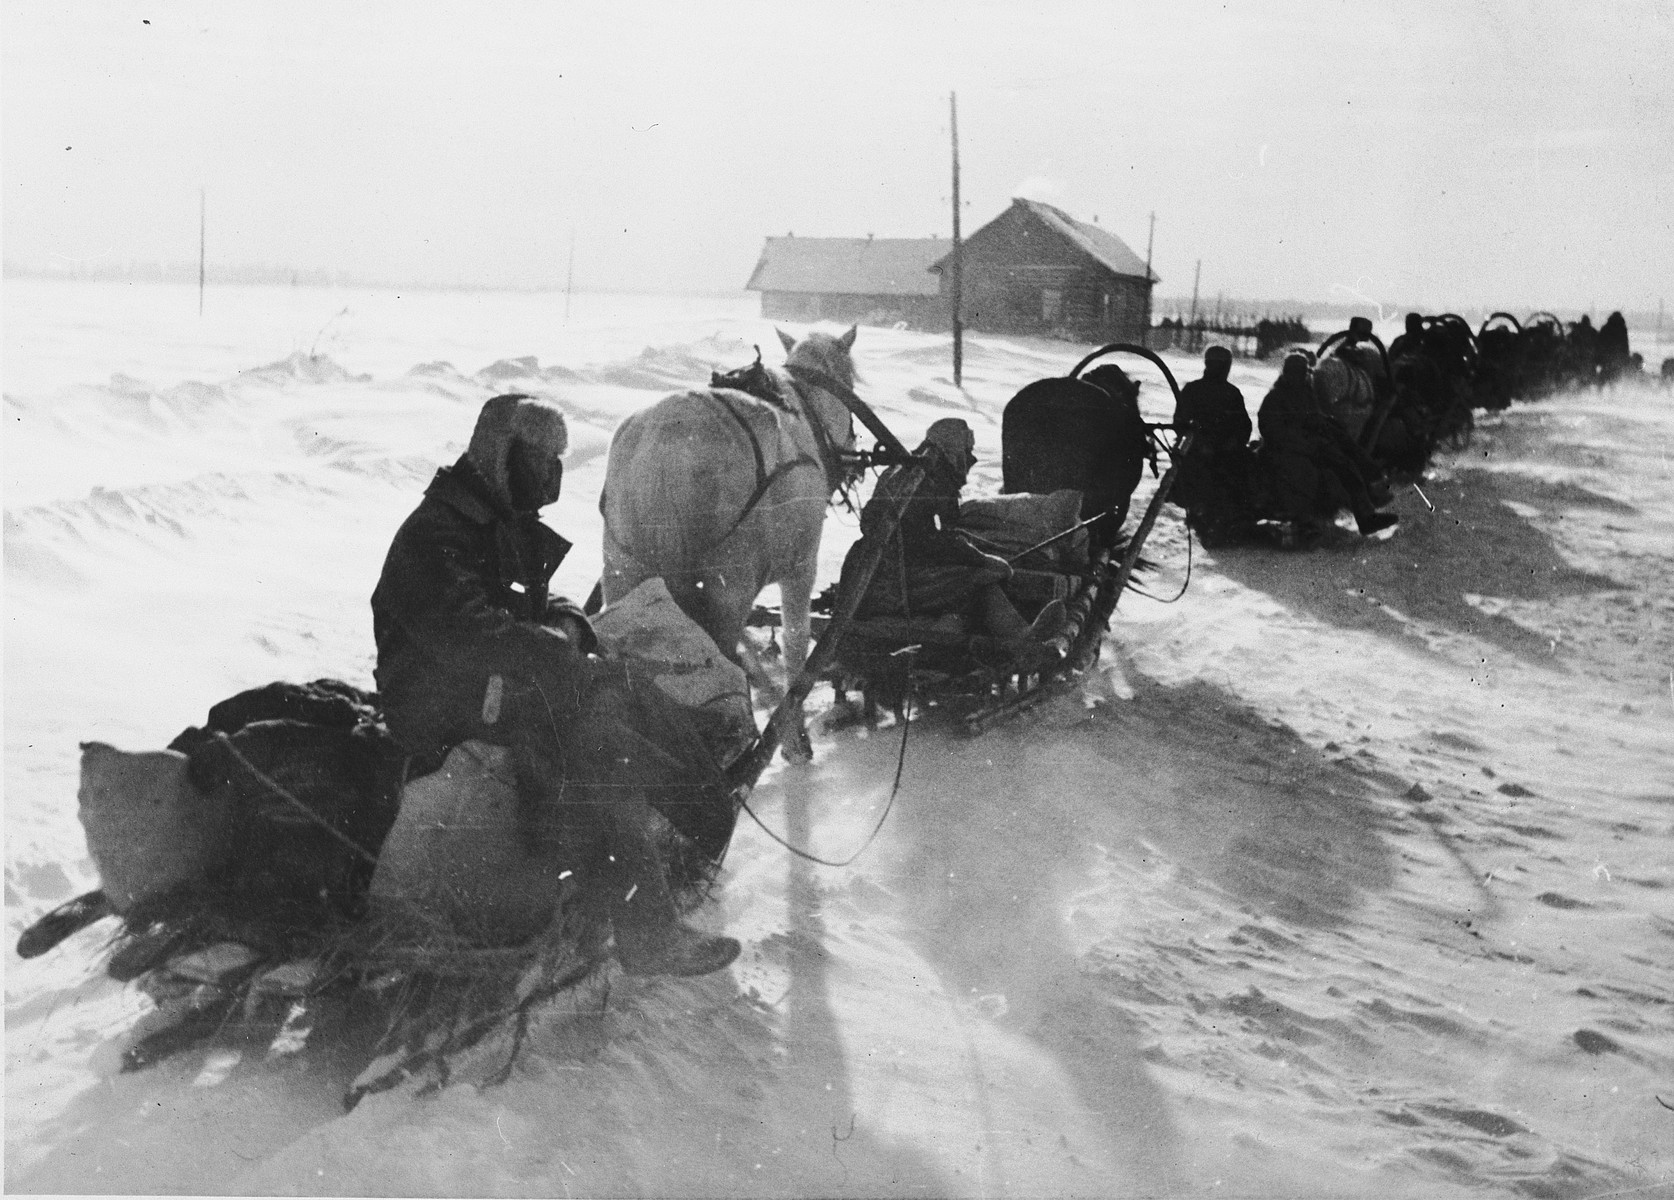 German soldiers ride in a caravan of horse-drawn sleighs through heavy snow [probably in the Soviet Union].